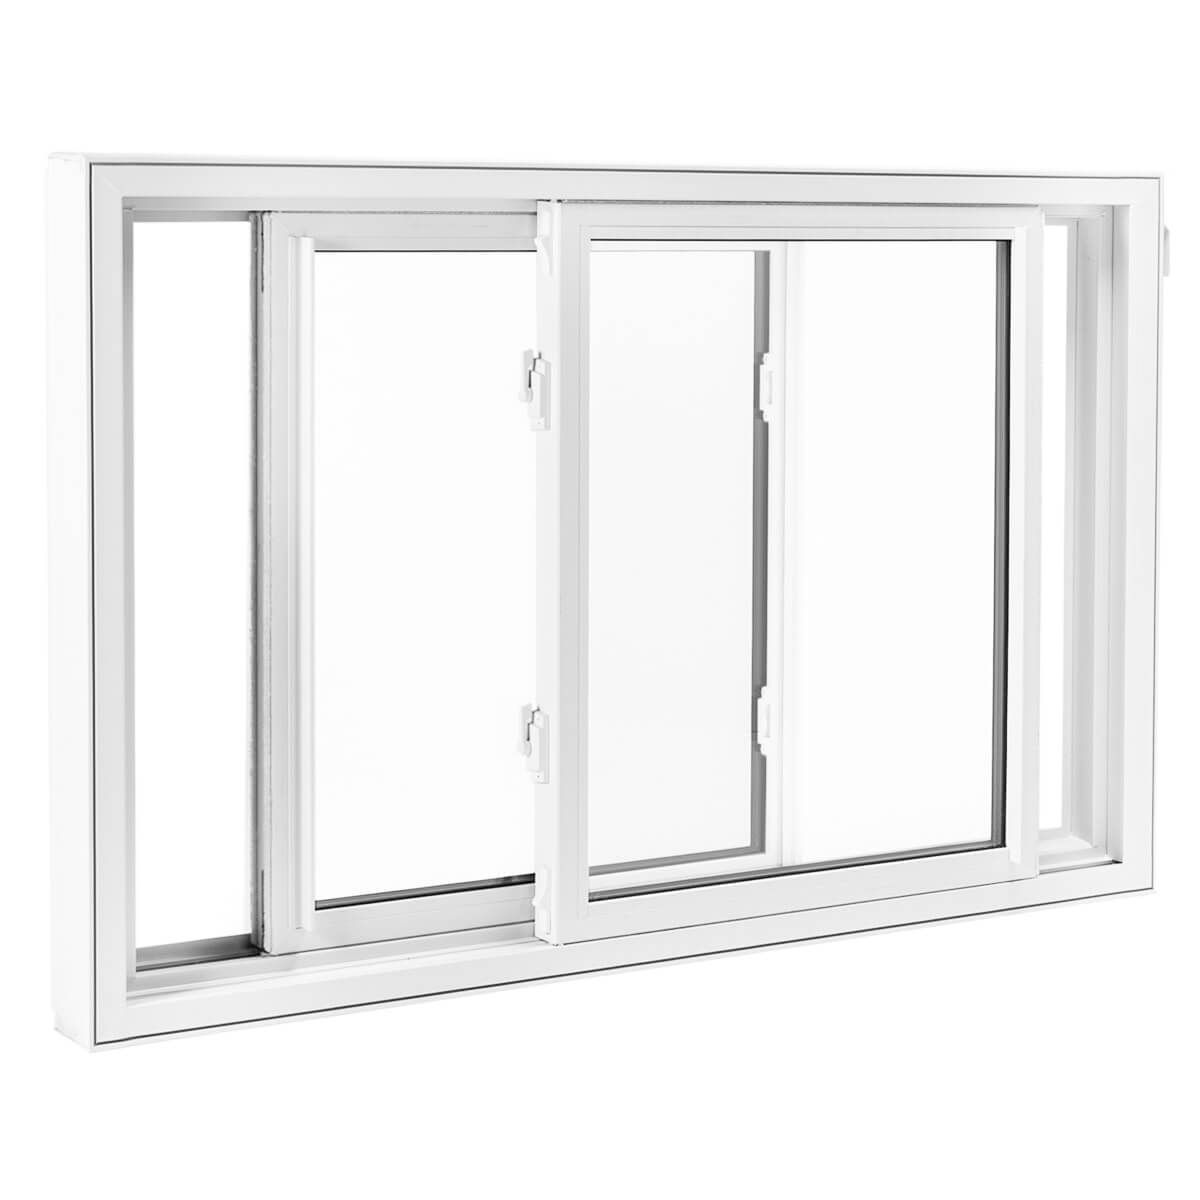 Side Slider Windows